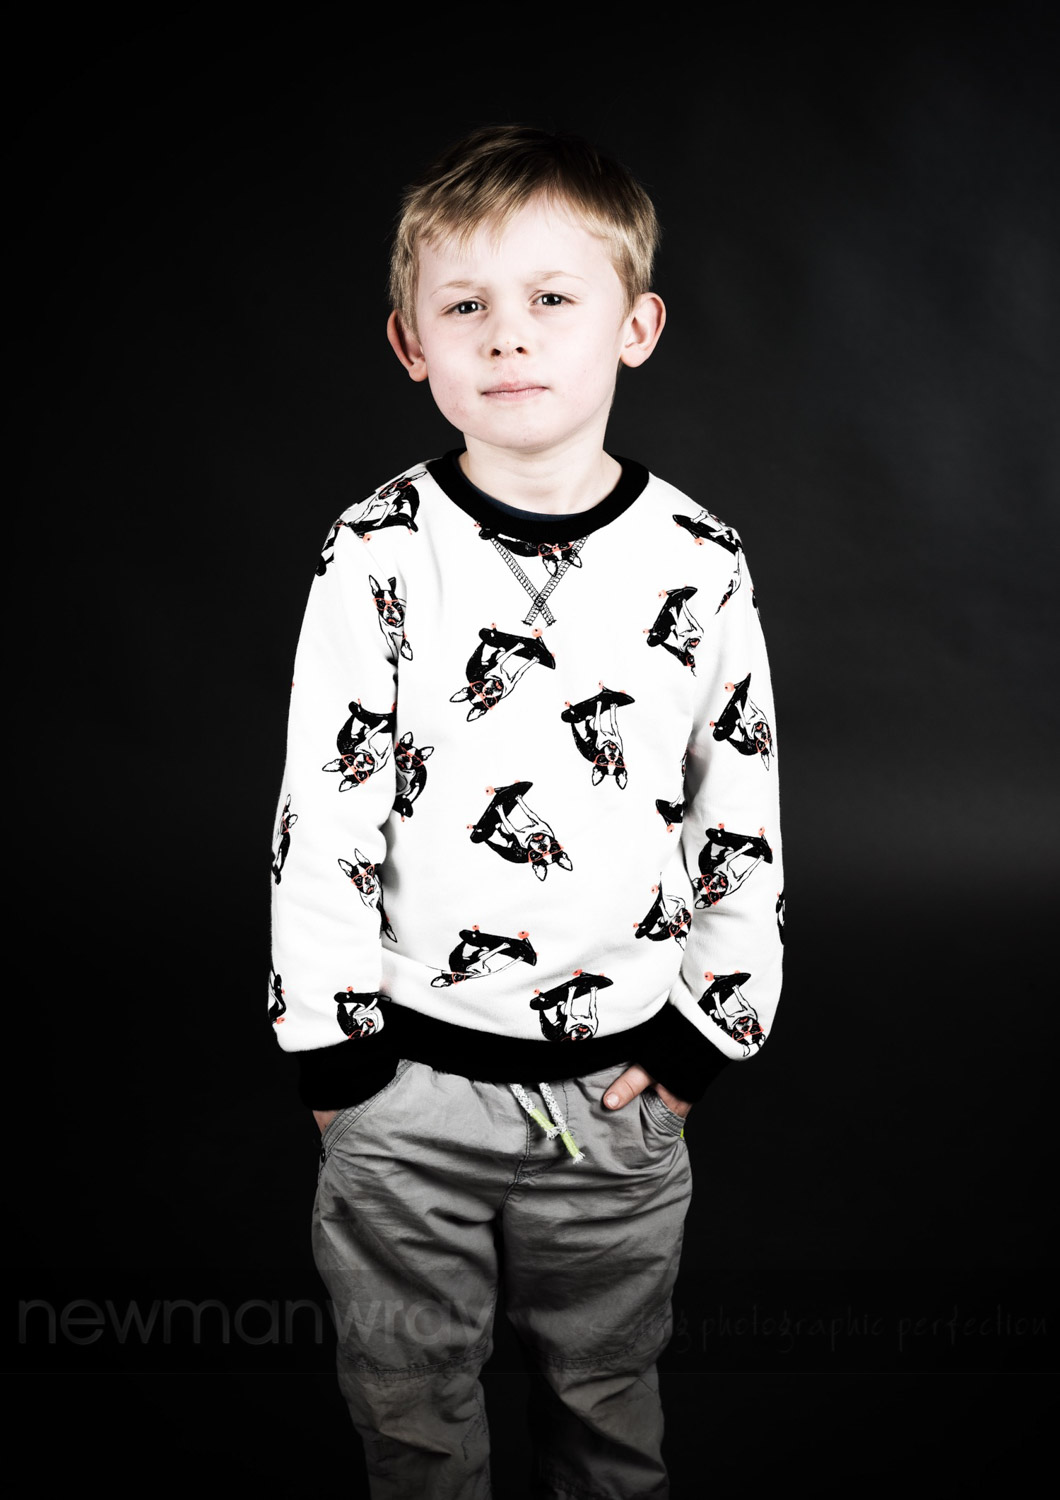 tadcaster_portrait_photography-5